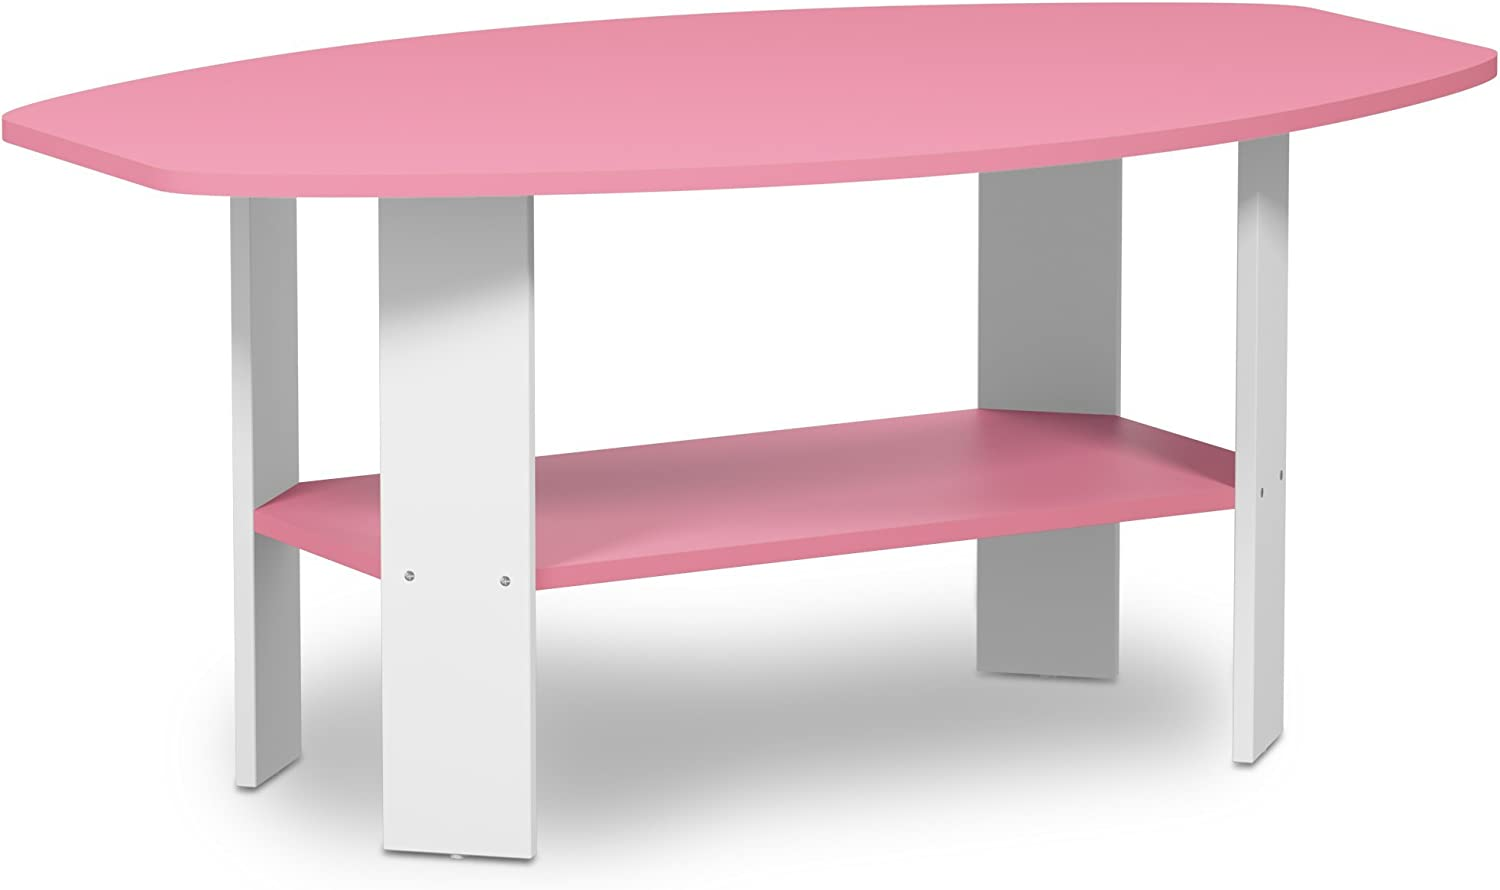 Furinno 11179PI Simple Design, Coffee Table, Pink White